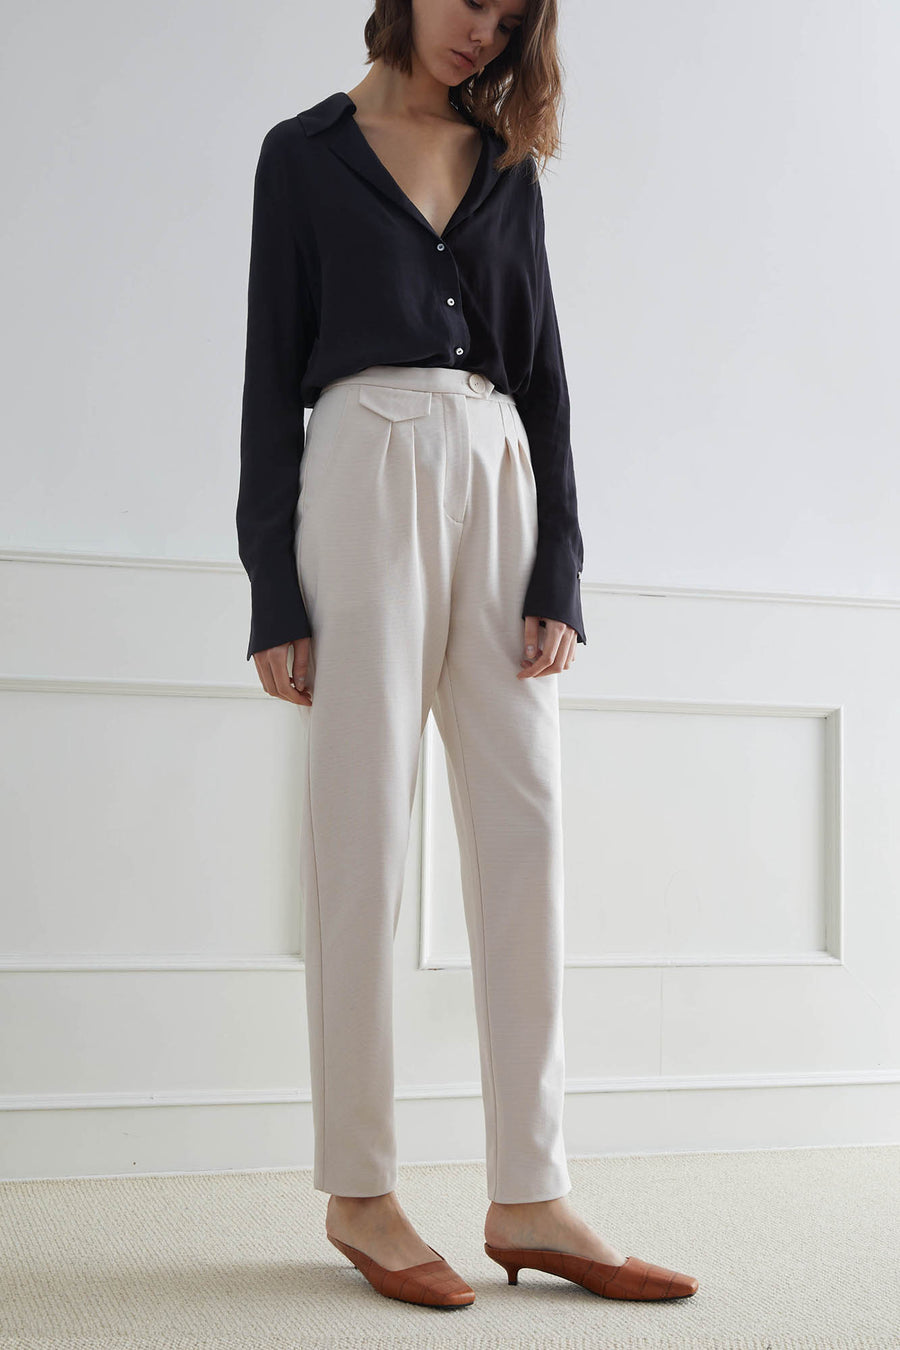 DEVON Corduroy Pencil Pants